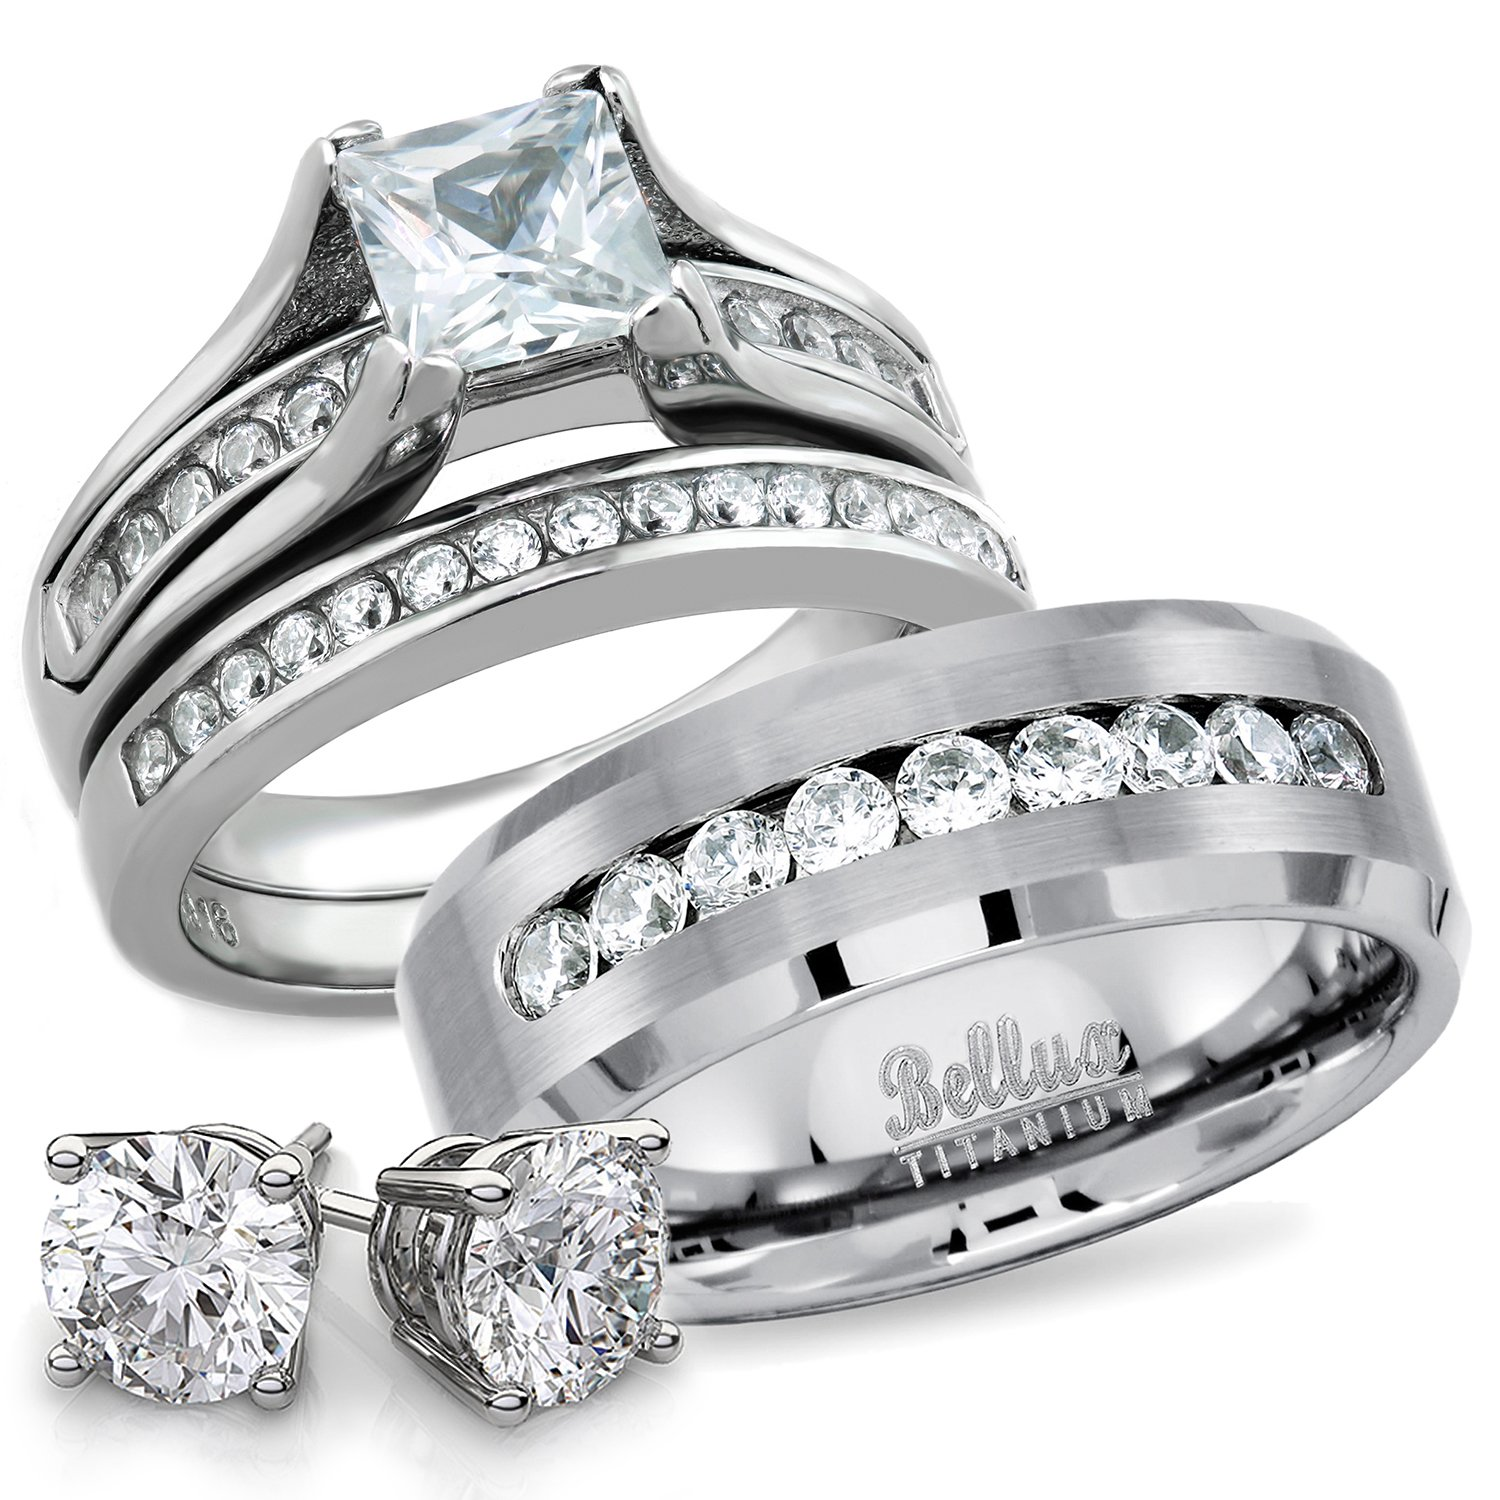 His and Hers Titanium Stainless Steel CZ Bridal Matching Wedding RingS Set + FREE STERLING SILVER EARRINGS